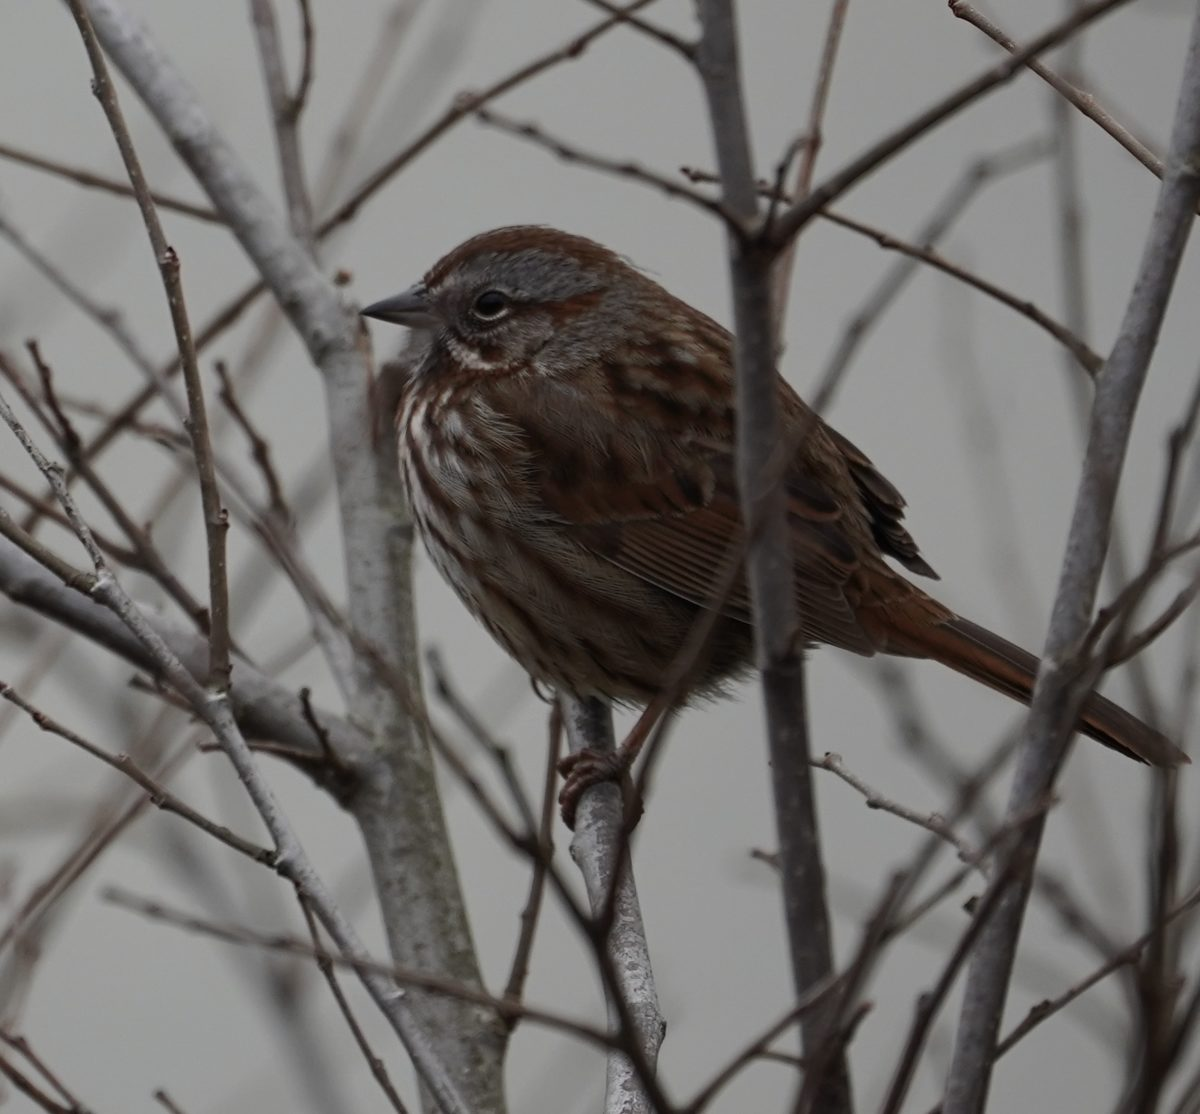 Song sparrow in branches